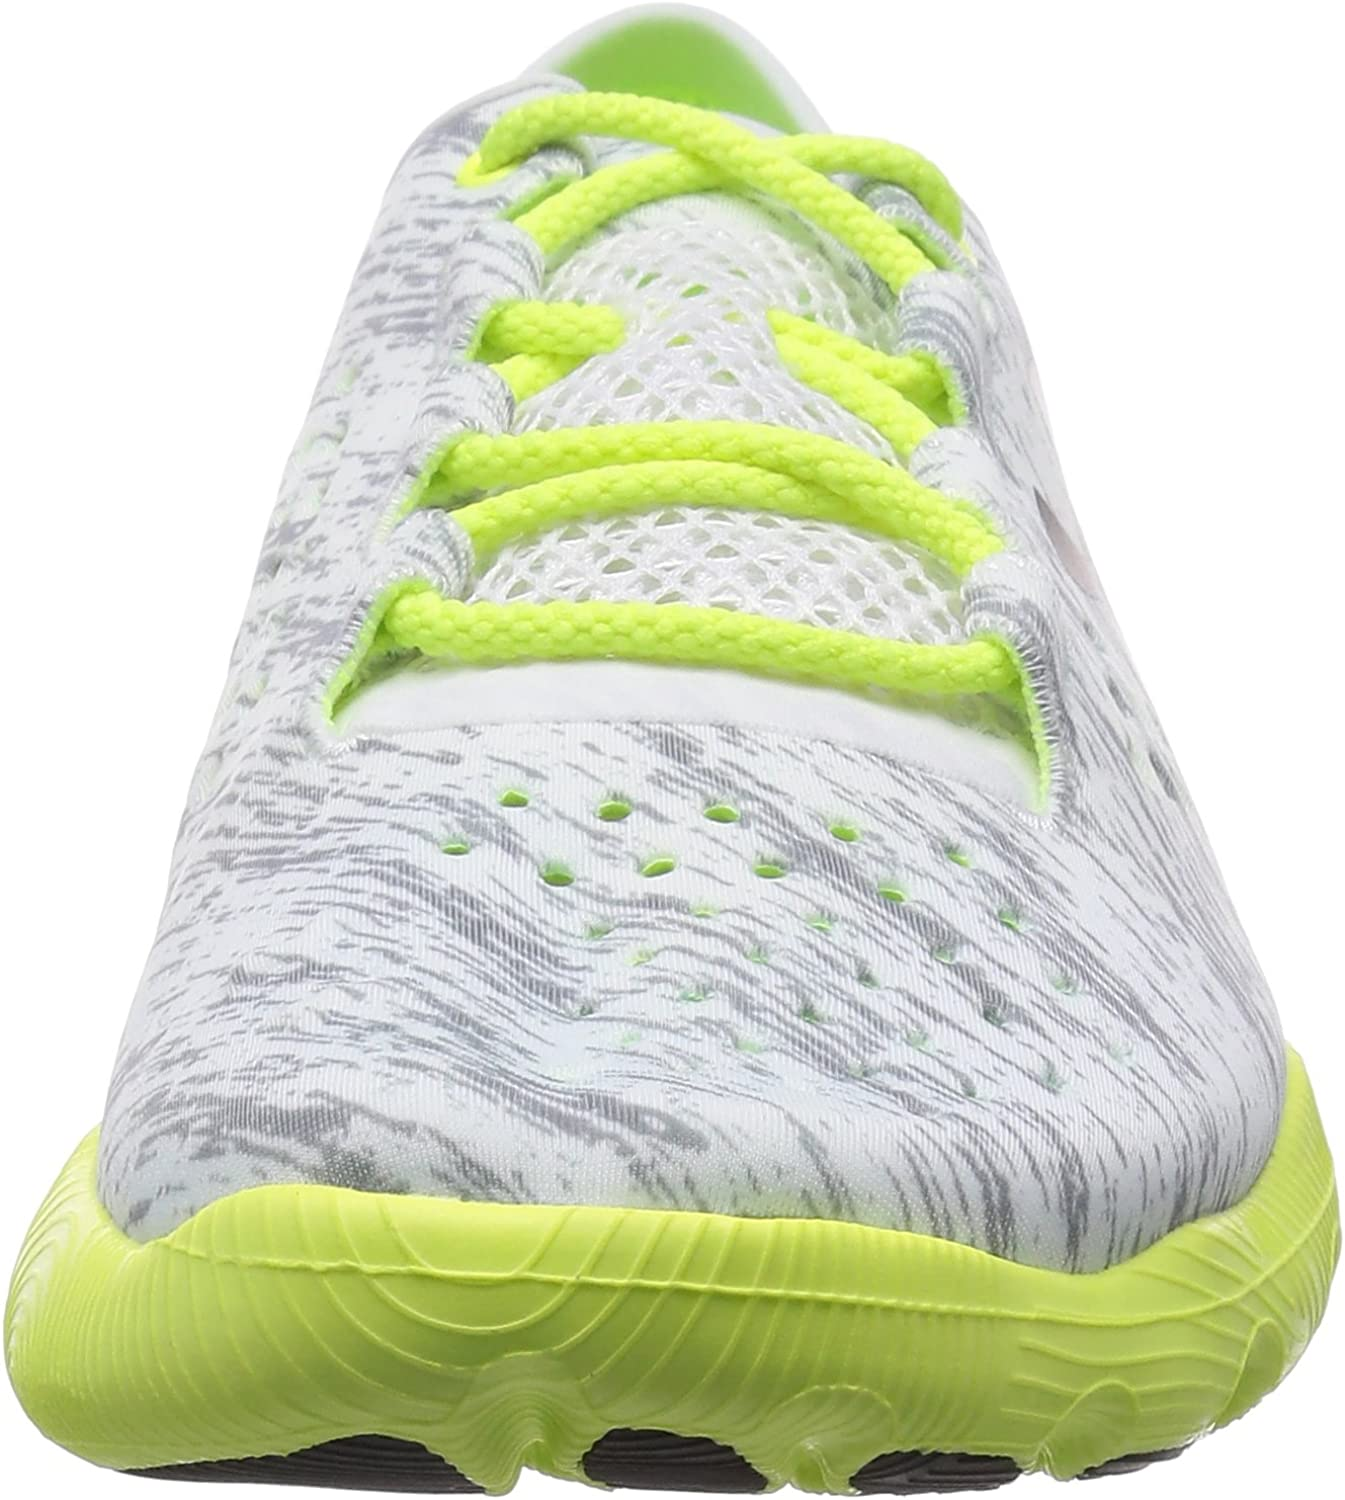 Amazon.com: under armour UA SPEEDFORM Apollo TWST Sneaker ...